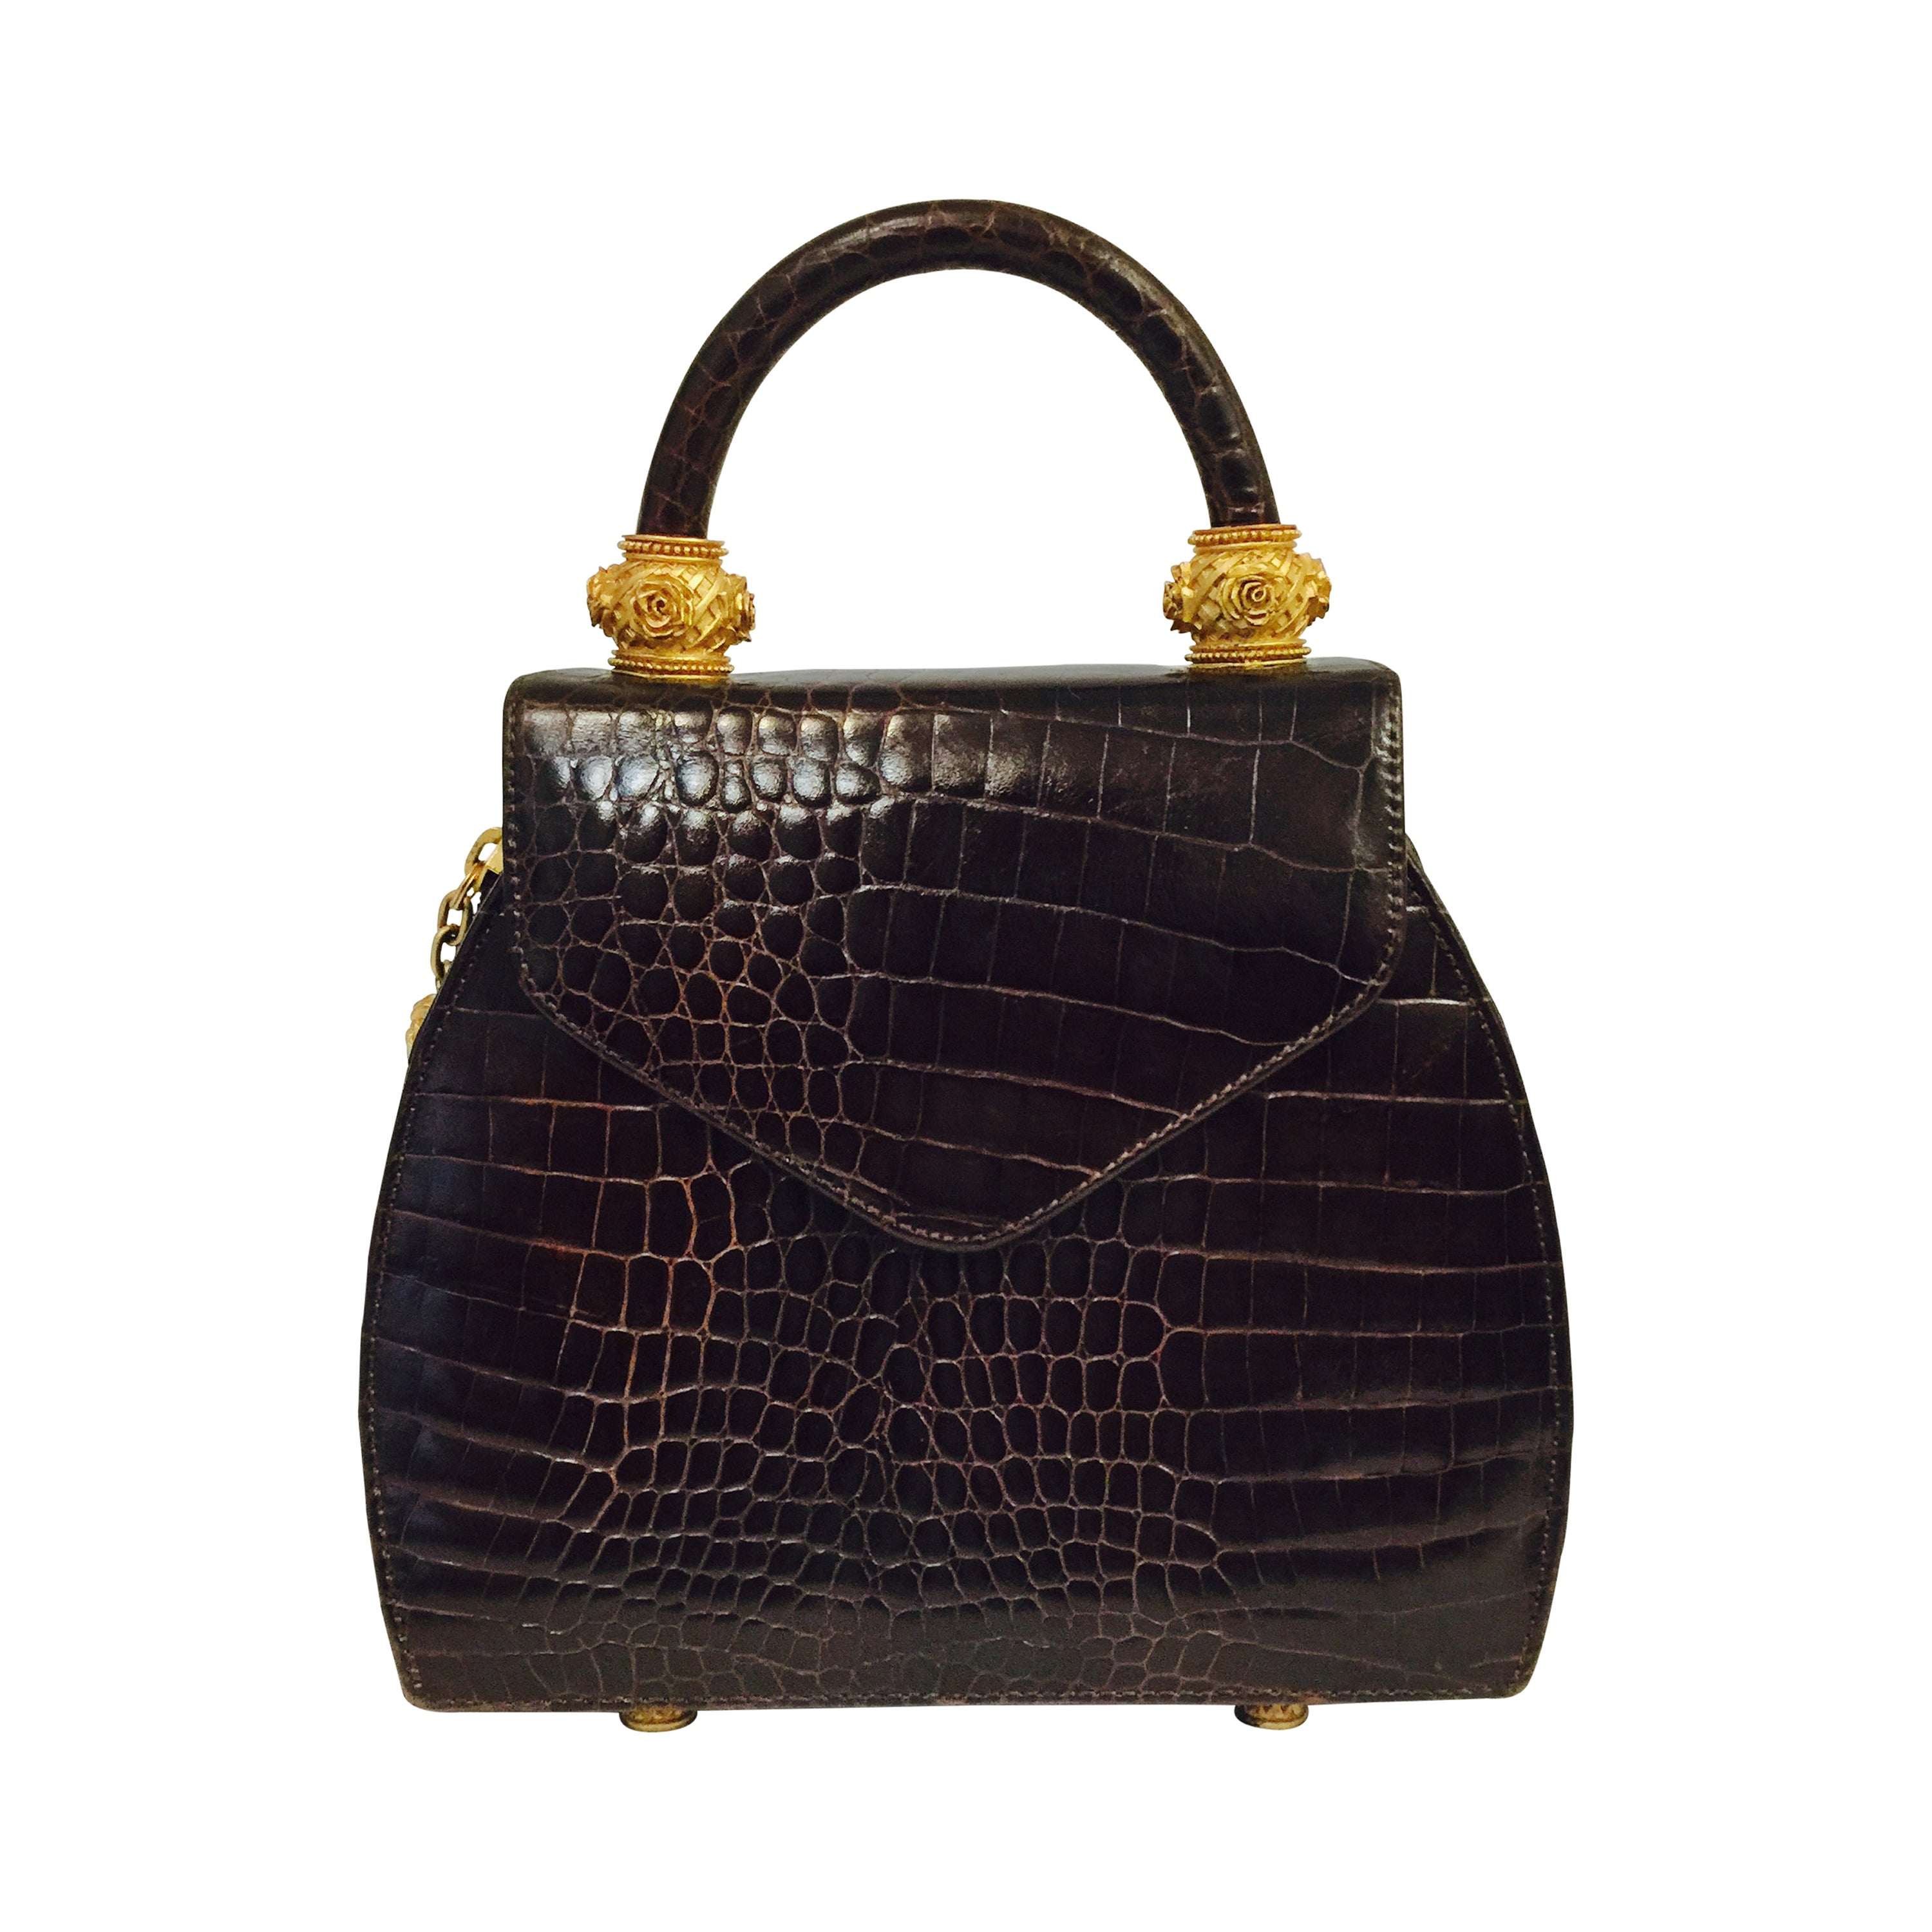 5547b0a63a12 Vincenza Crocodile Embossed Leather Bag at 1stdibs